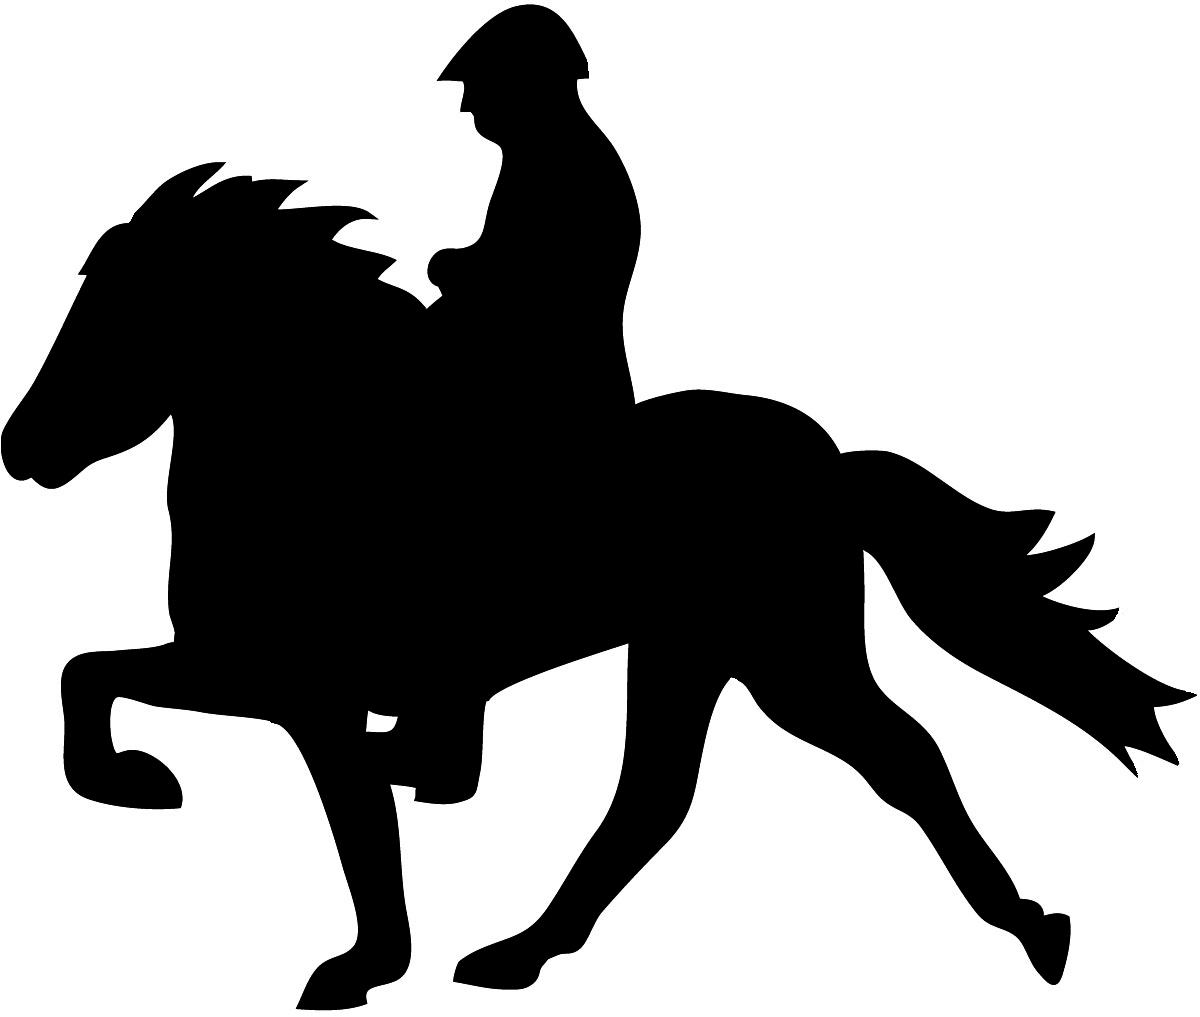 Horse Racing clipart animal tail Graphics Silhouette Silhouette graphics Silhouette